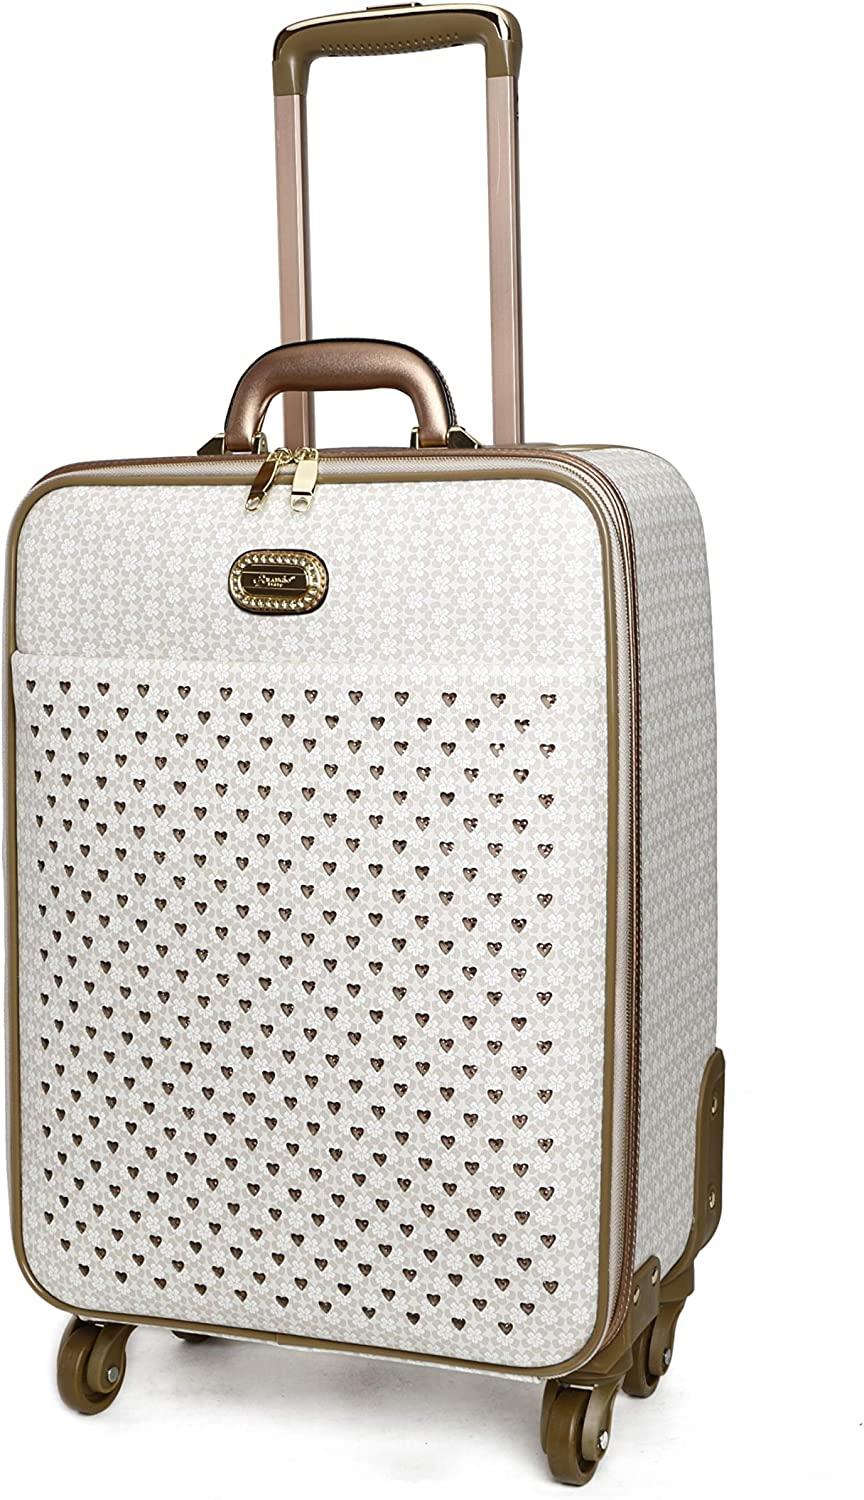 Burgundy BRAMGIO Italy Luggege Galaxy Stars Luggage structured matte pebble leather Luggage US Patented RLL 8899 Series